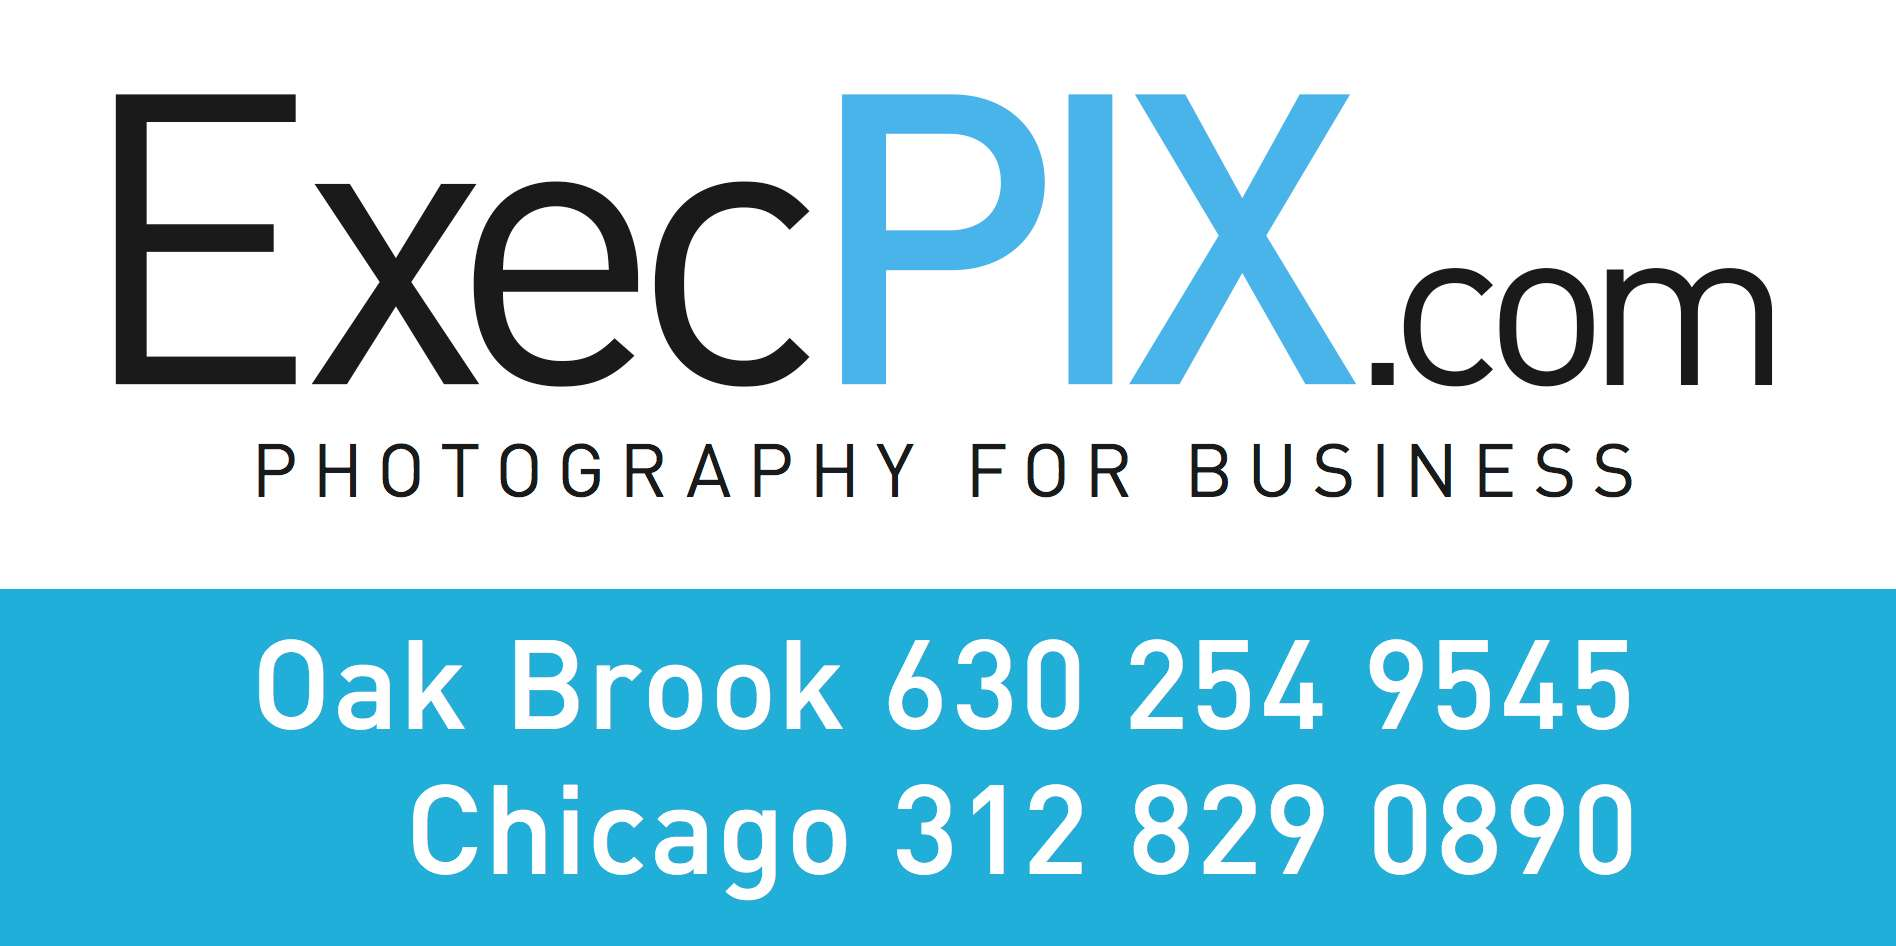 Matt Ferguson Photography Ltd. | ExecPIX